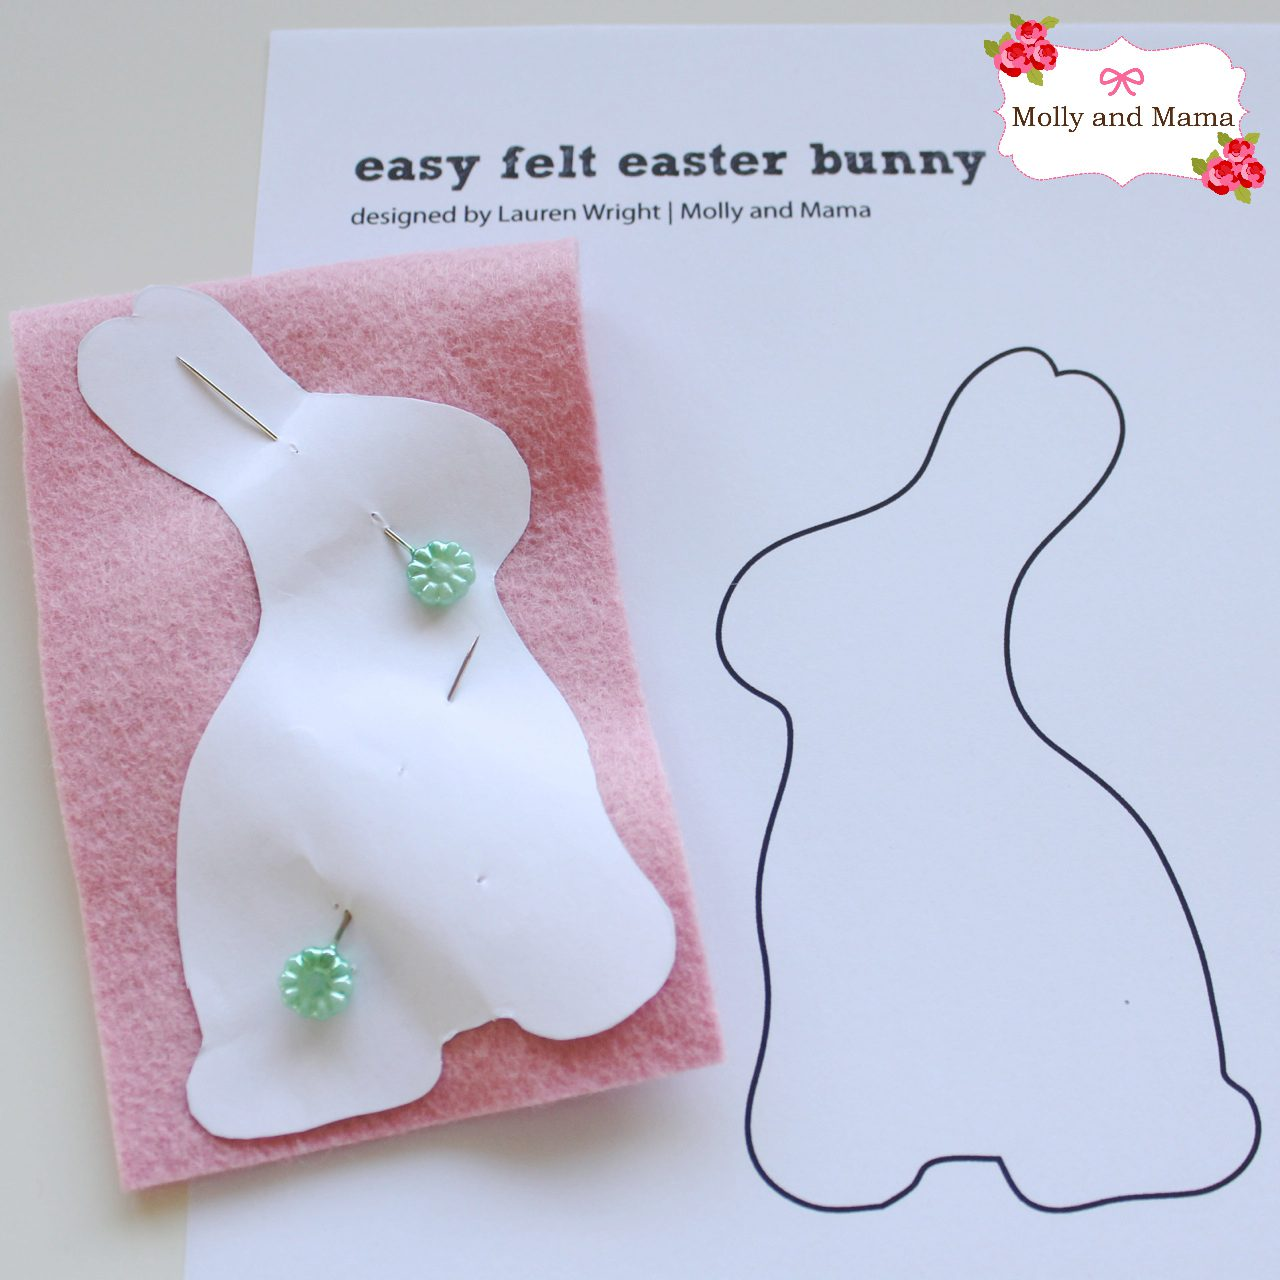 Easy Felt Bunny Tutorial by Molly and Mama 2